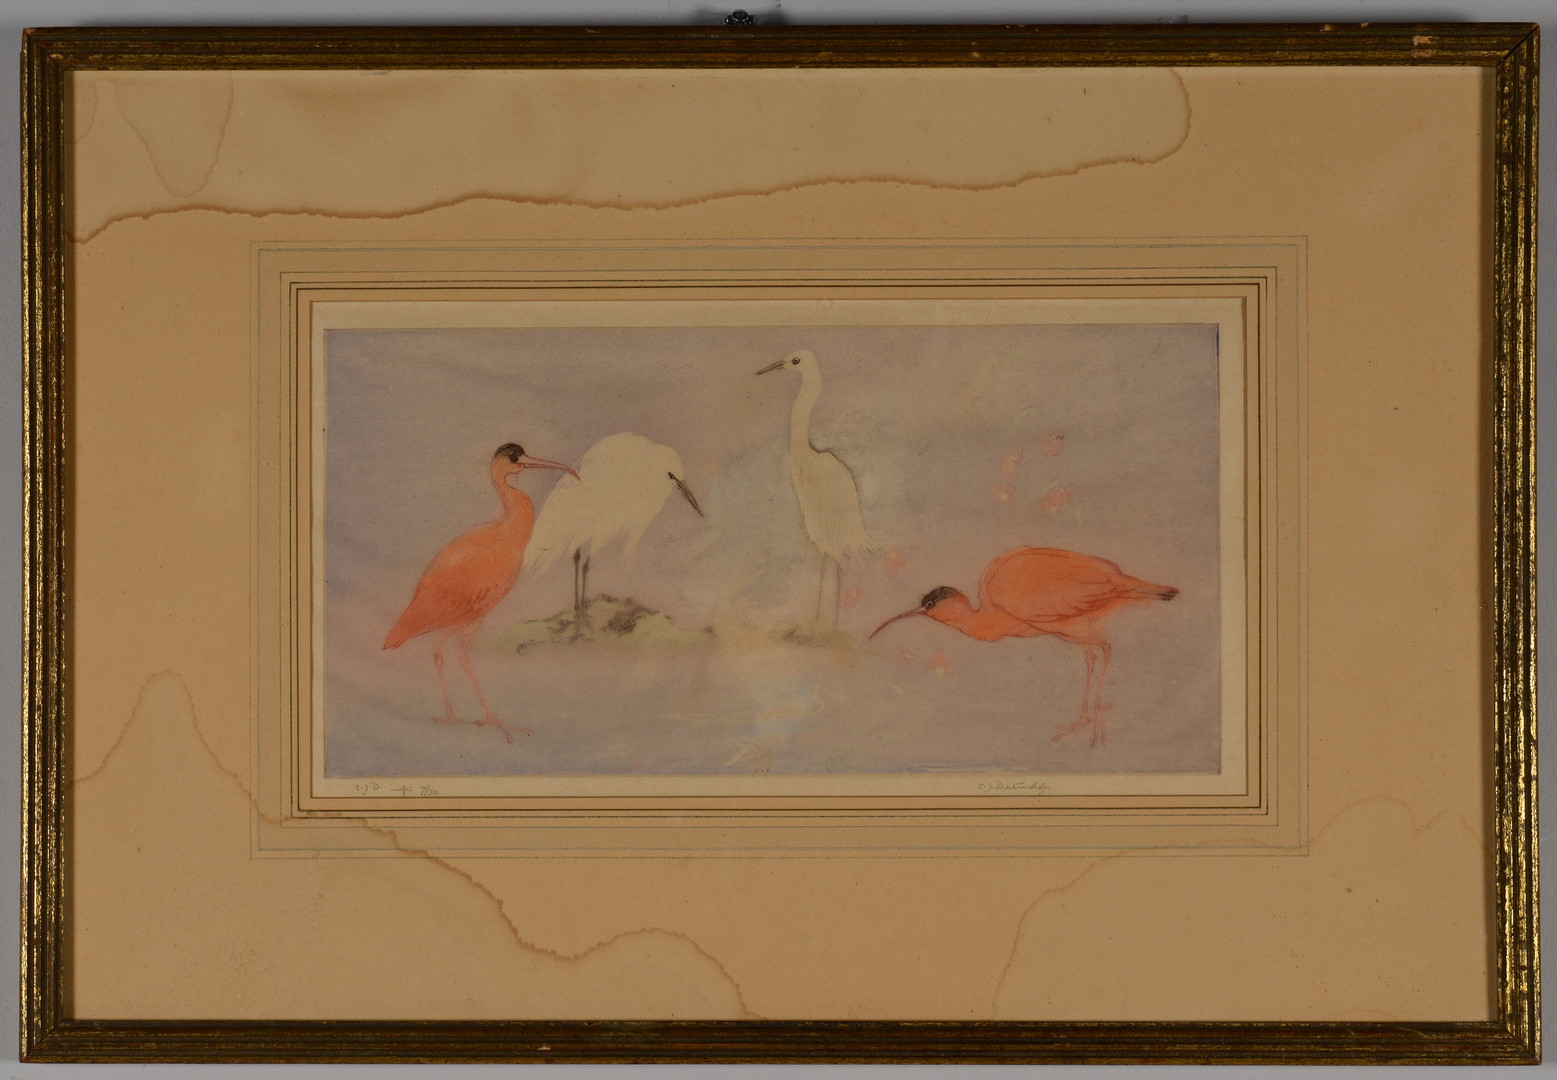 Lot 679: E.J. Detmold aquatint